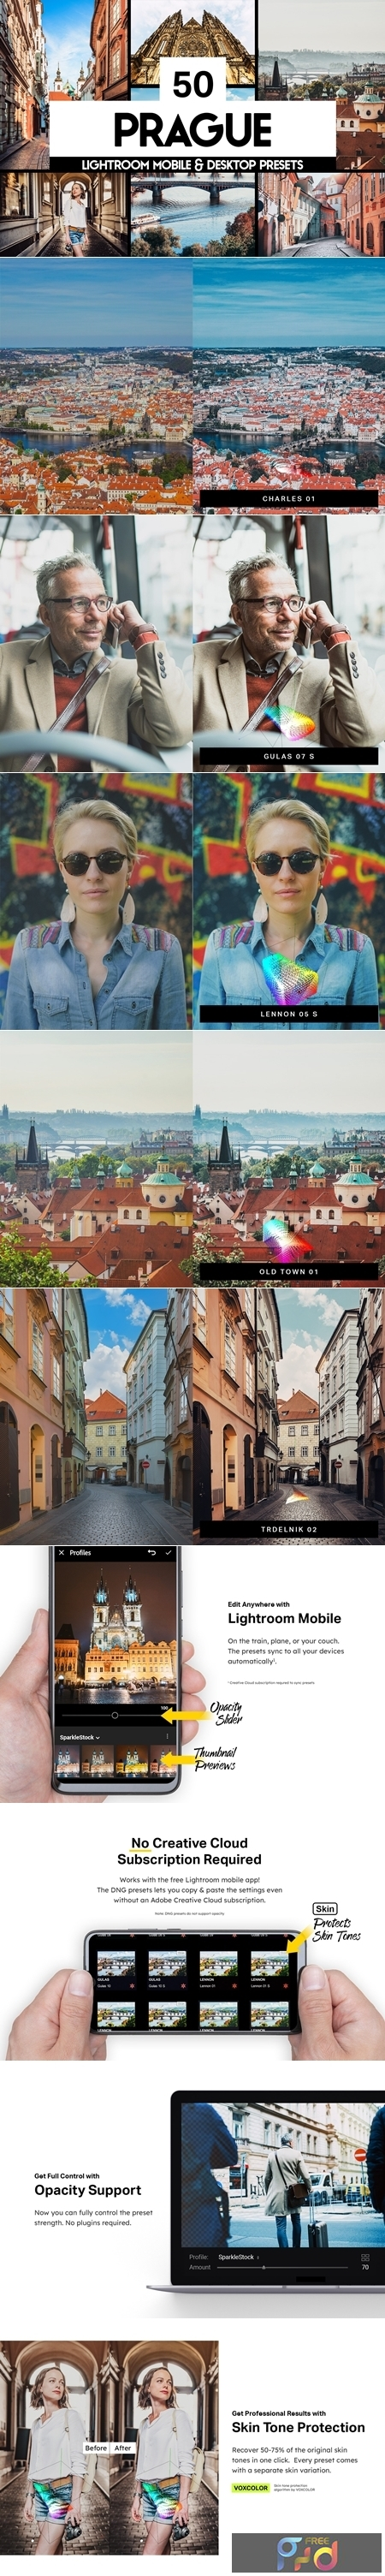 50 Prague Lightroom Presets and LUTs 4417553 1